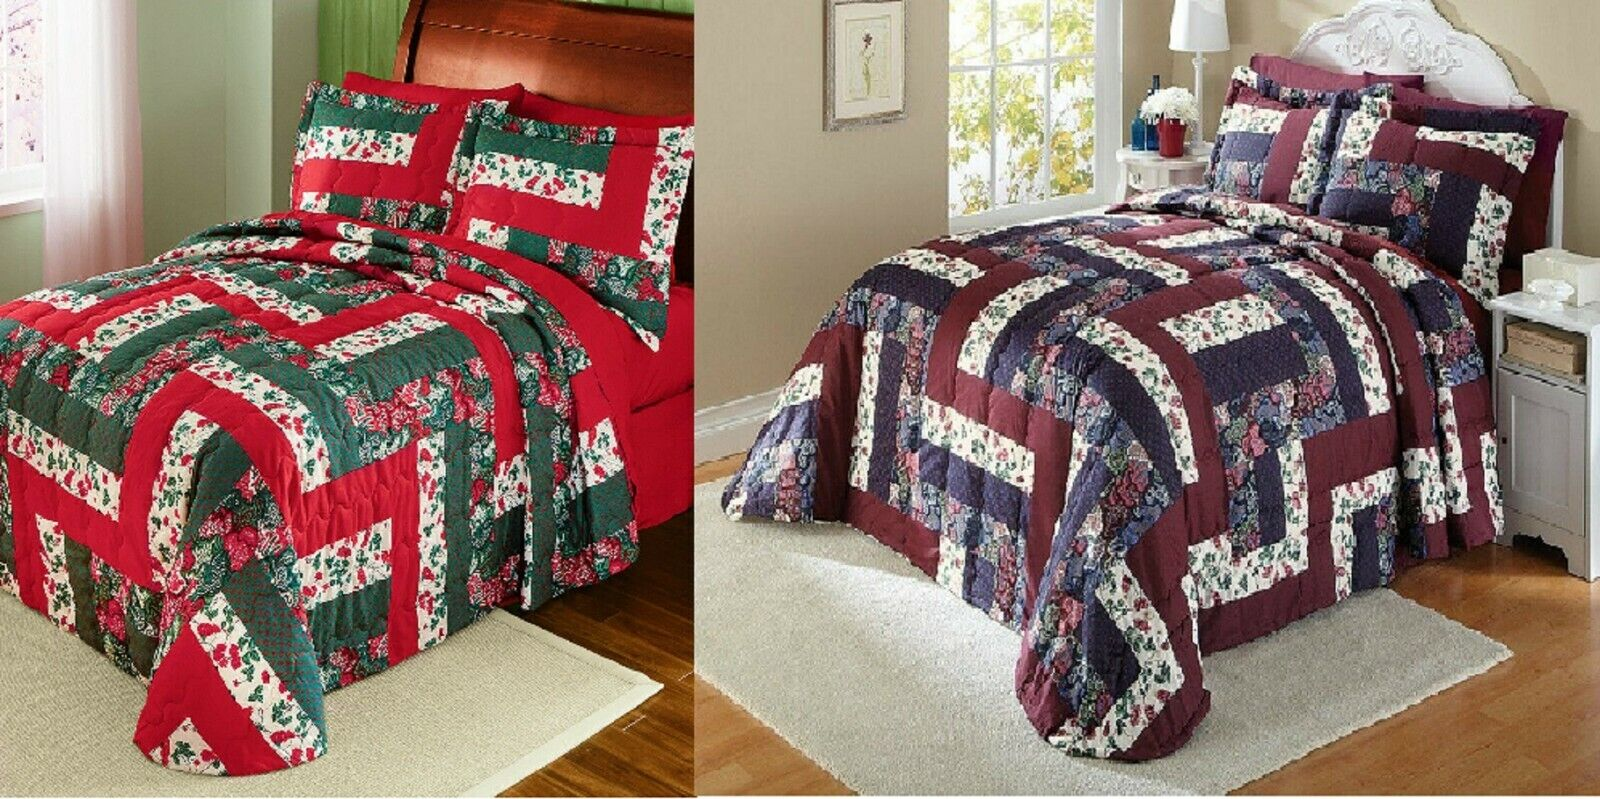 Caledonia Floral Patchwork Quilted Medium-weight Bedspread Full Queen King Color Bedding